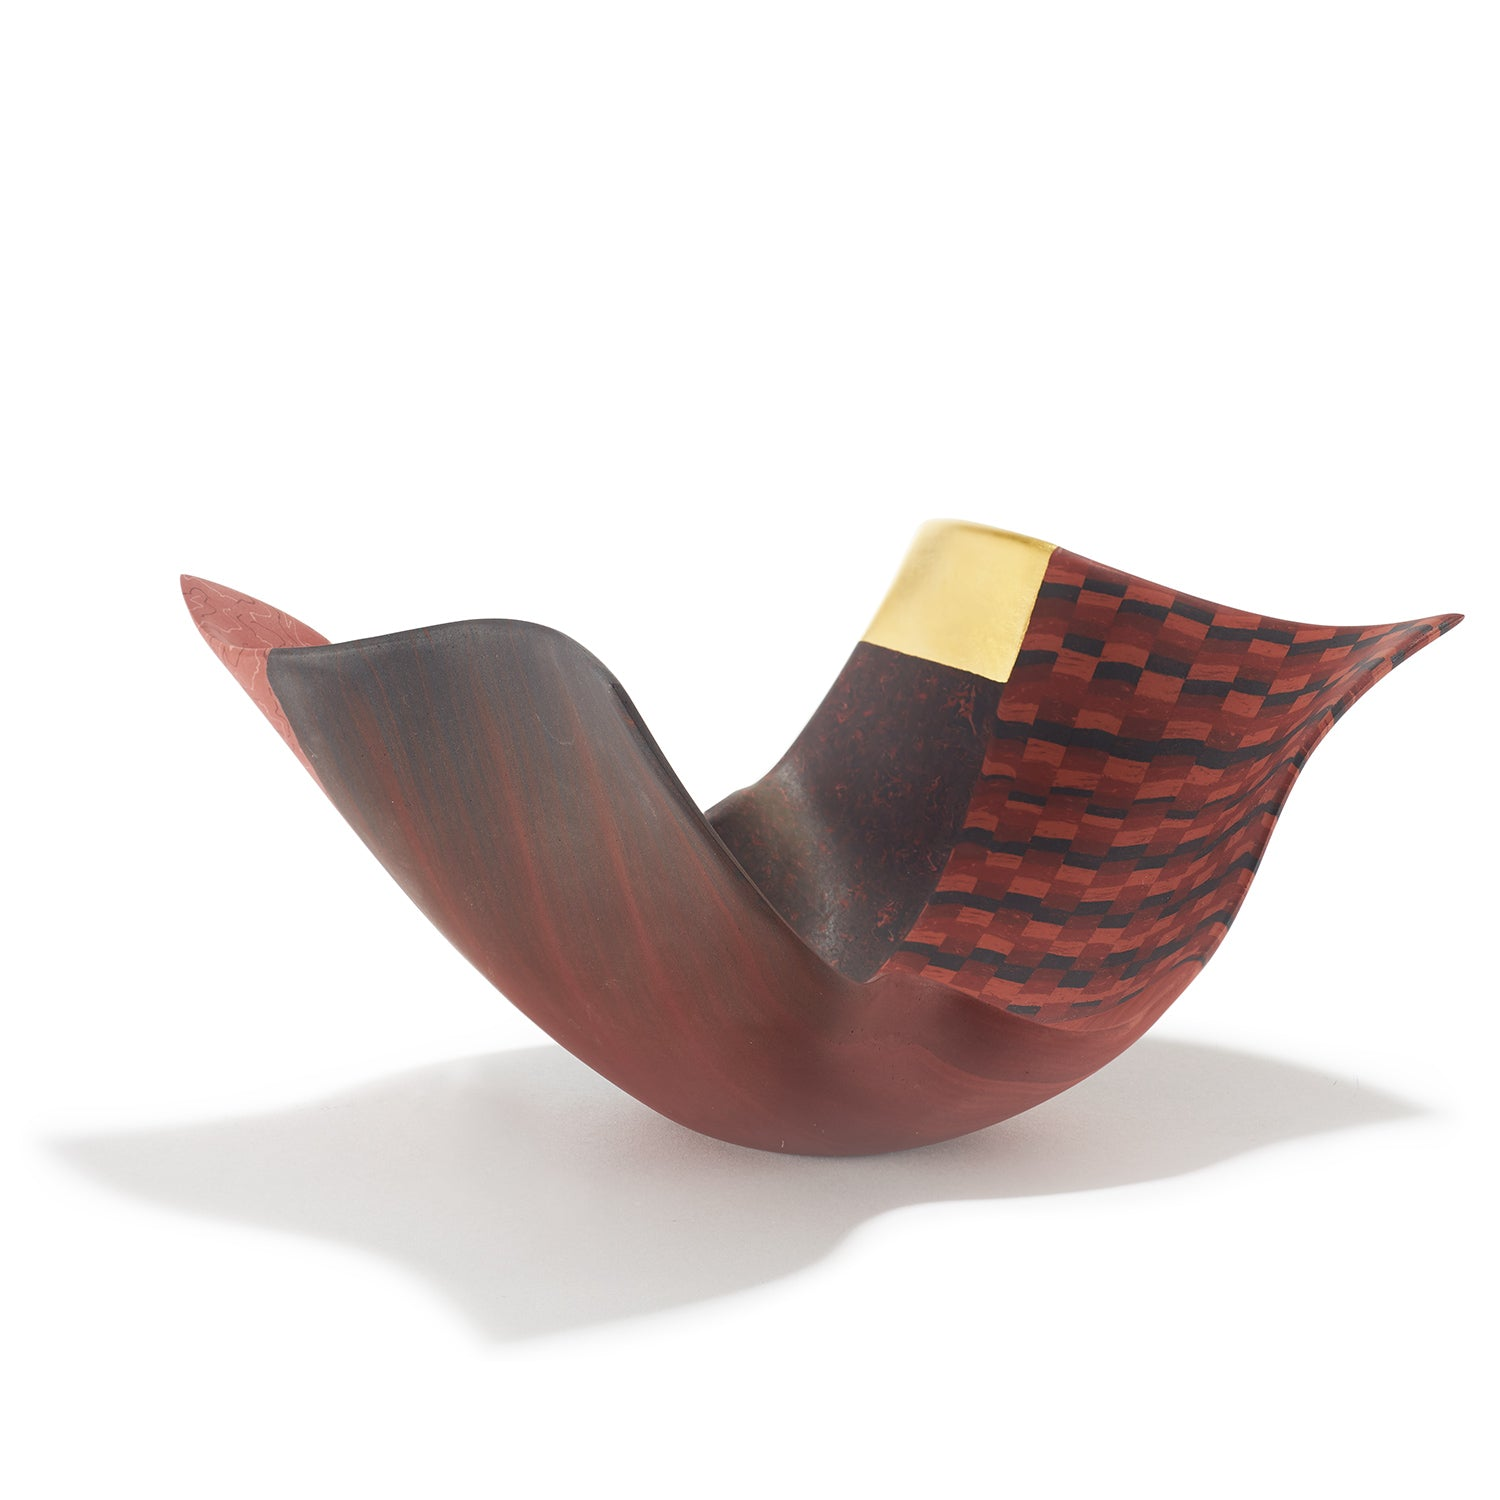 Small Red Arabesque Vessel with Gold Leaf